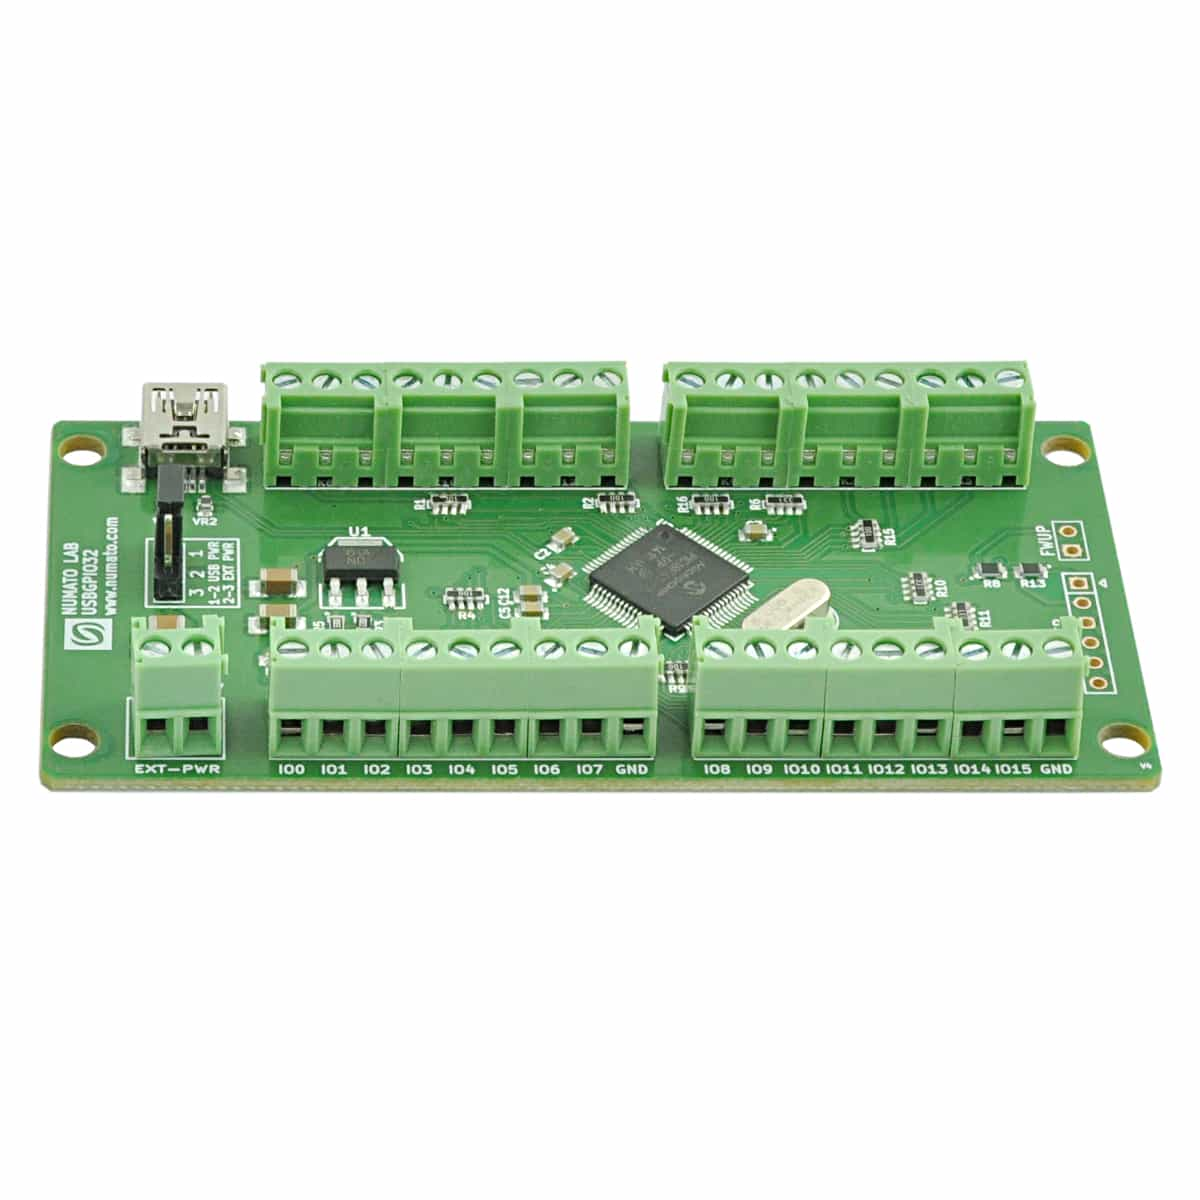 32 Channel Usb Gpio Module With Analog Inputs Numato Lab Download Image Circuit Board Desktop Computer Pc Android Iphone And